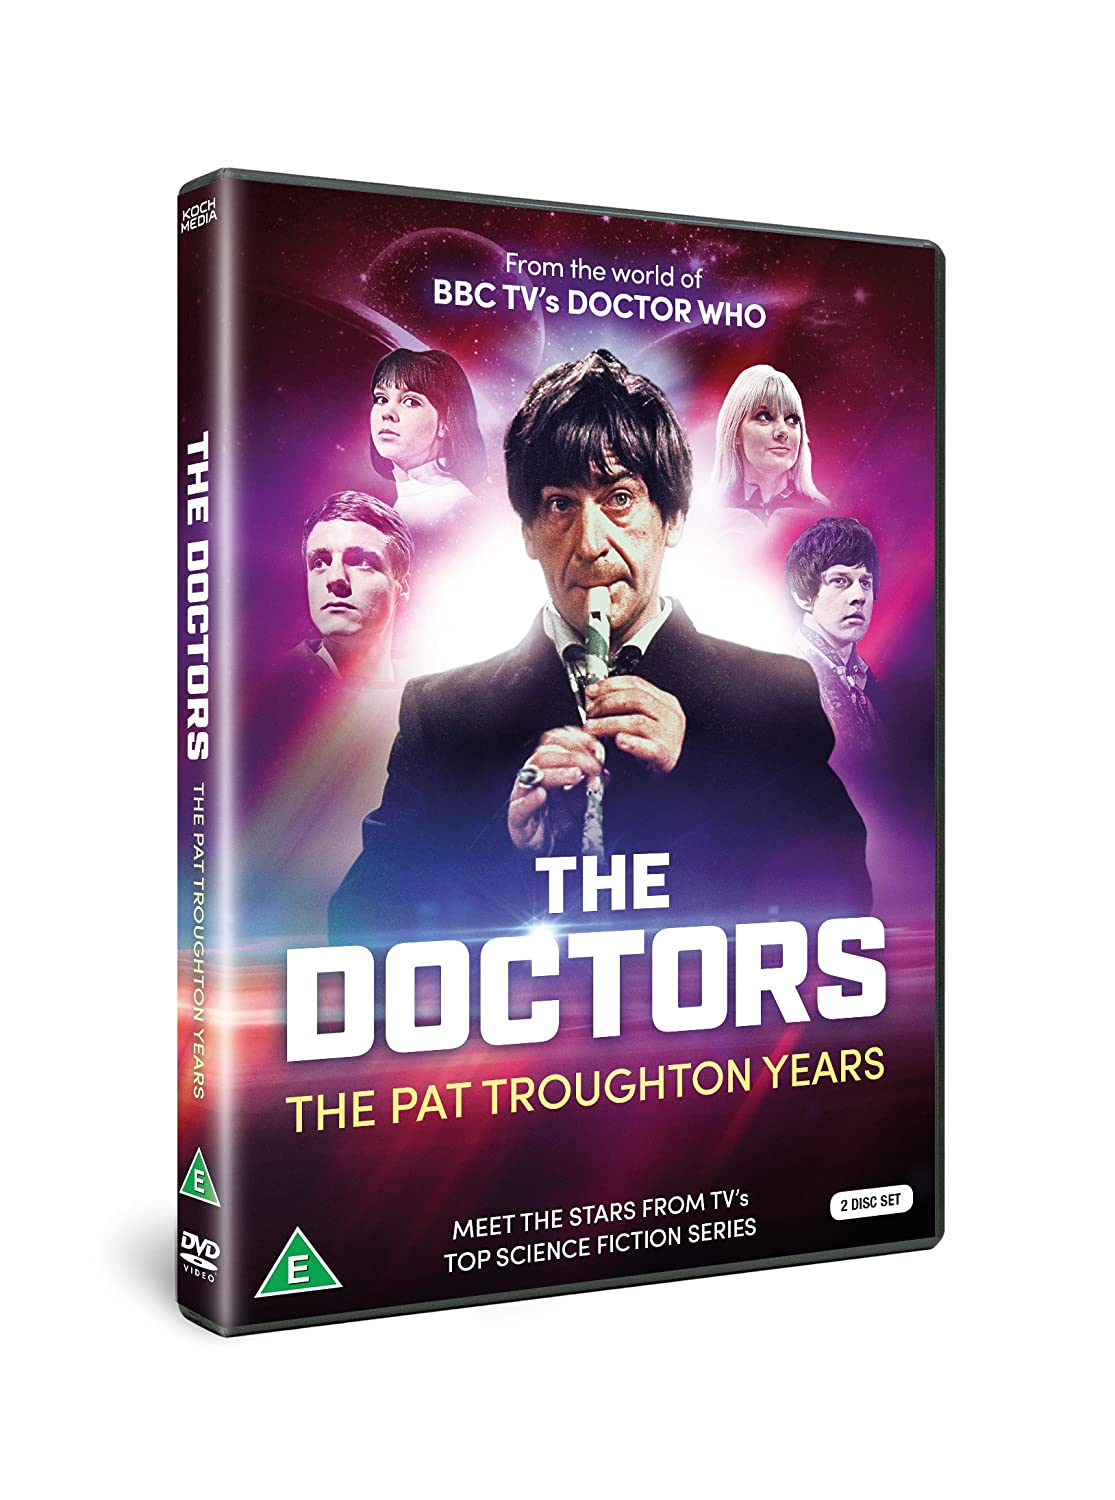 The Doctors: The Patrick Troughton Years